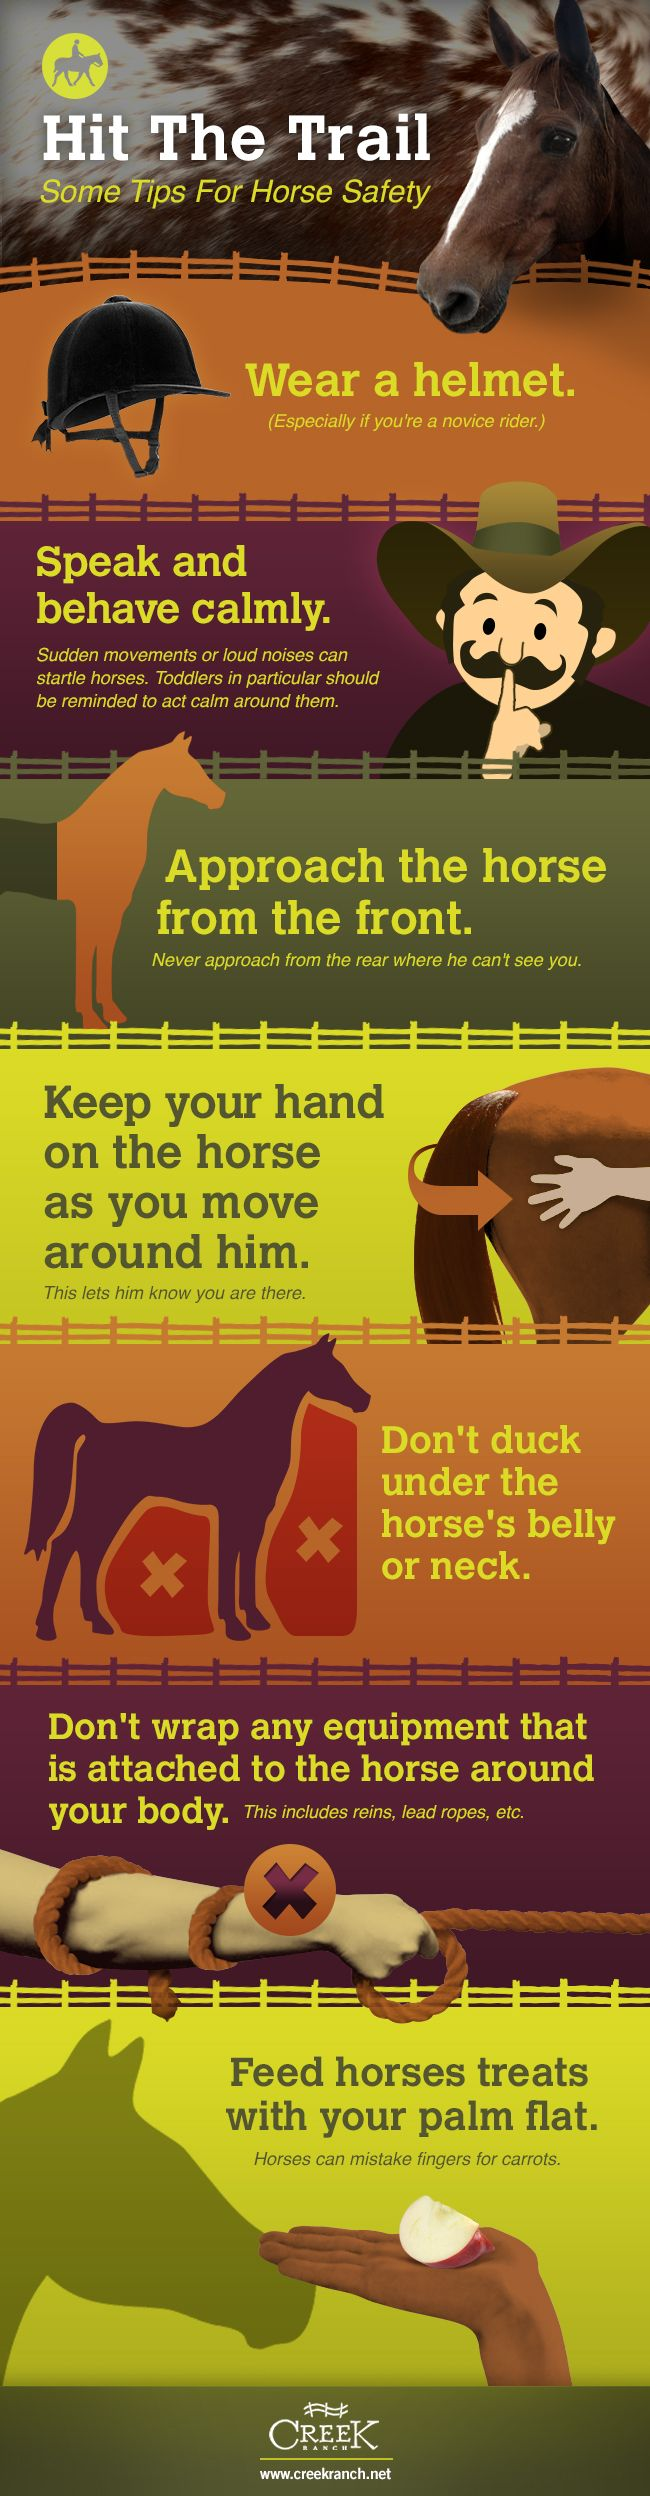 A few tips for safety around the ranch. #riding #horses